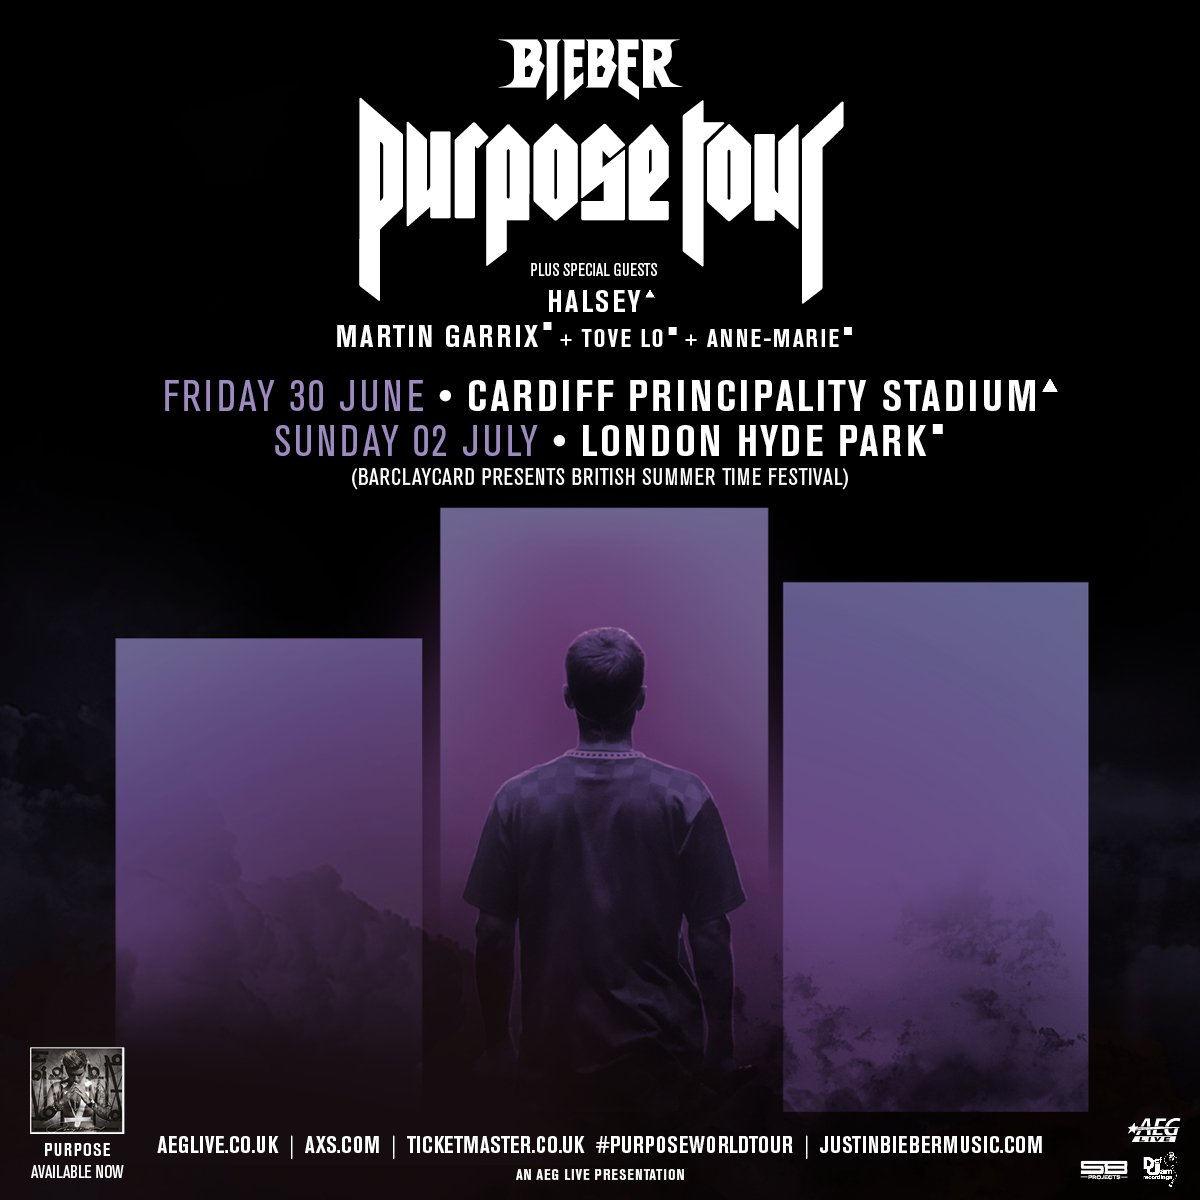 UK. Bringing #PurposeTour next summer to Cardiff and London https://t.co/vBknuqb076